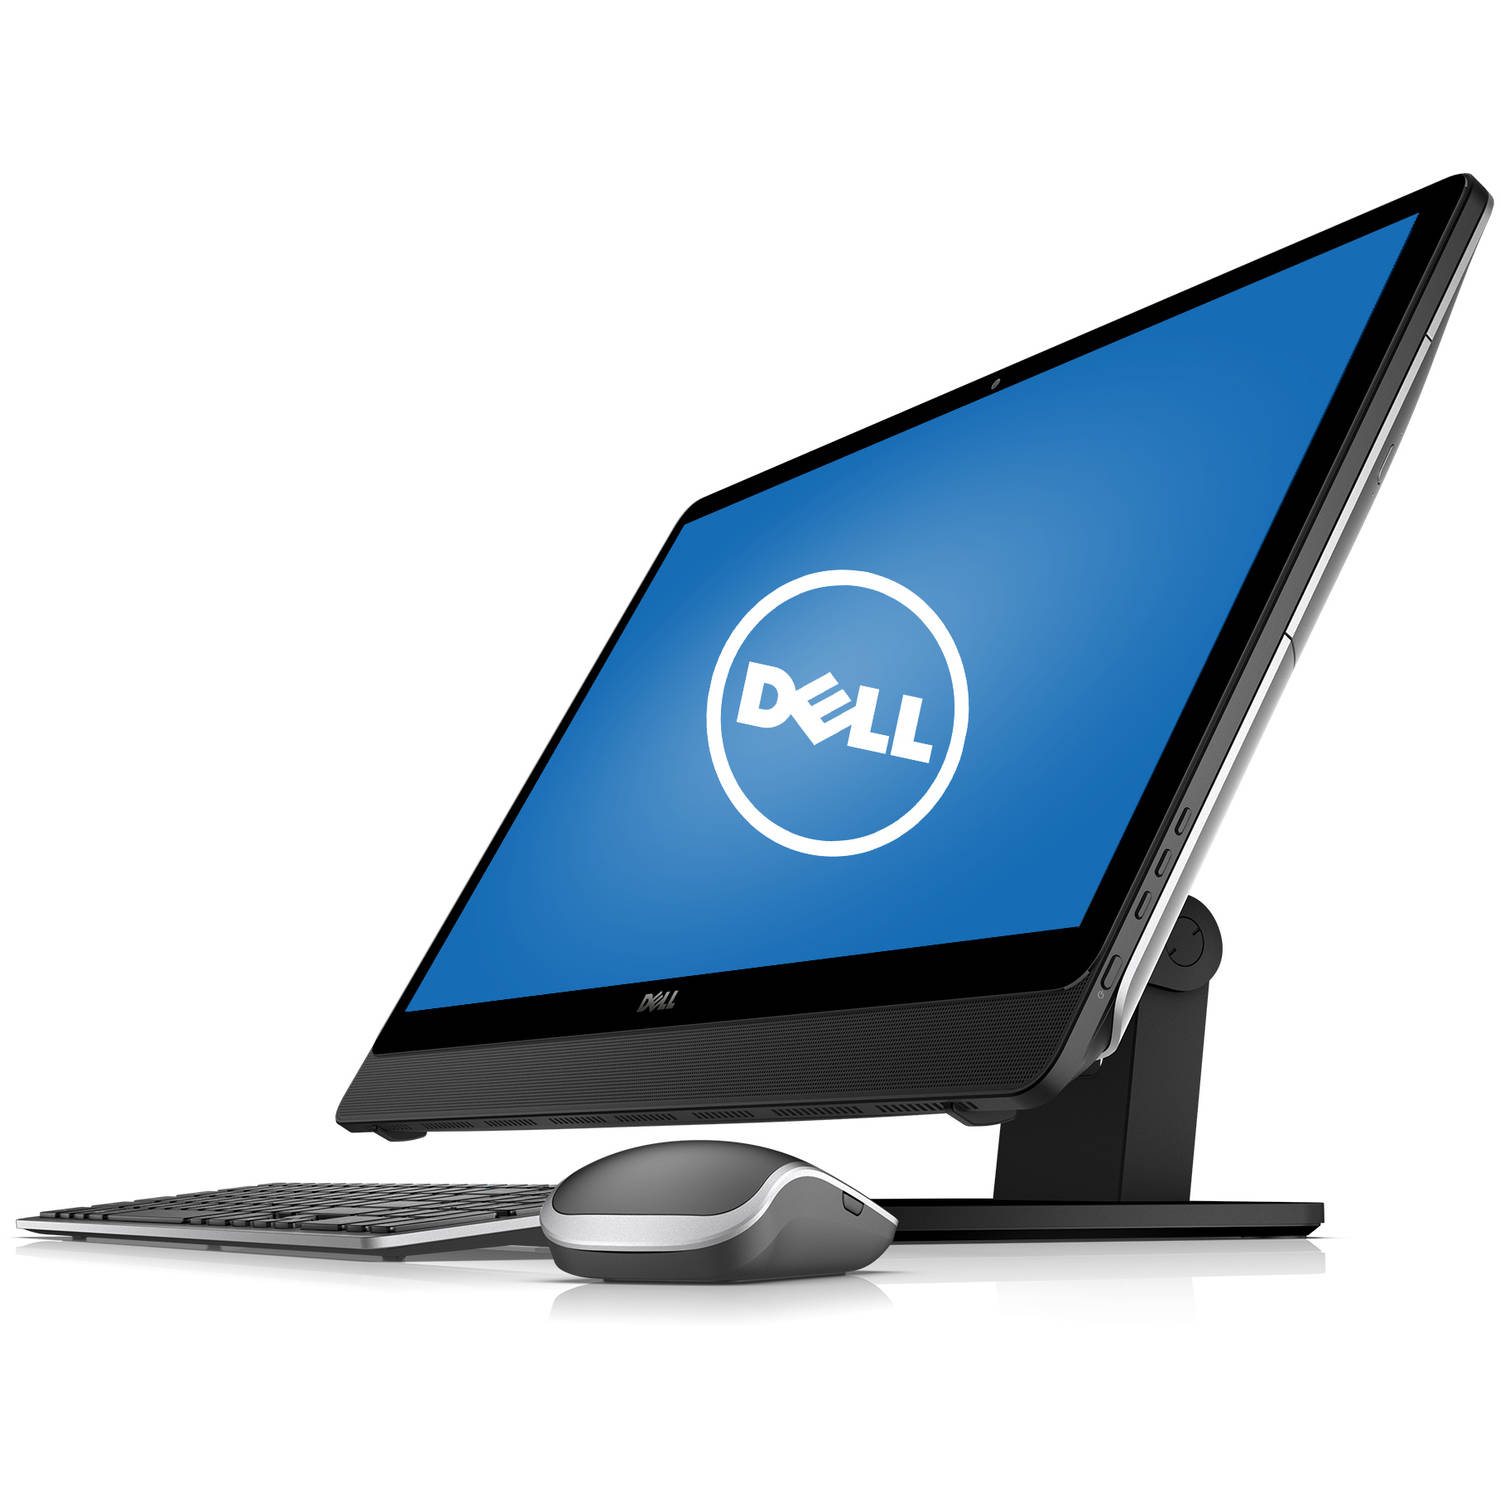 Dell Inspiron 24 5000 24-5459 All-in-One Computer - Intel Core i5 i5-6400T 2.20 GHz - Silver - 8 GB DDR3L SDRAM RAM - 1 TB HDD - DVD-Writer - Intel HD Graphics 530 - DDR3L SDRAM Graphics -